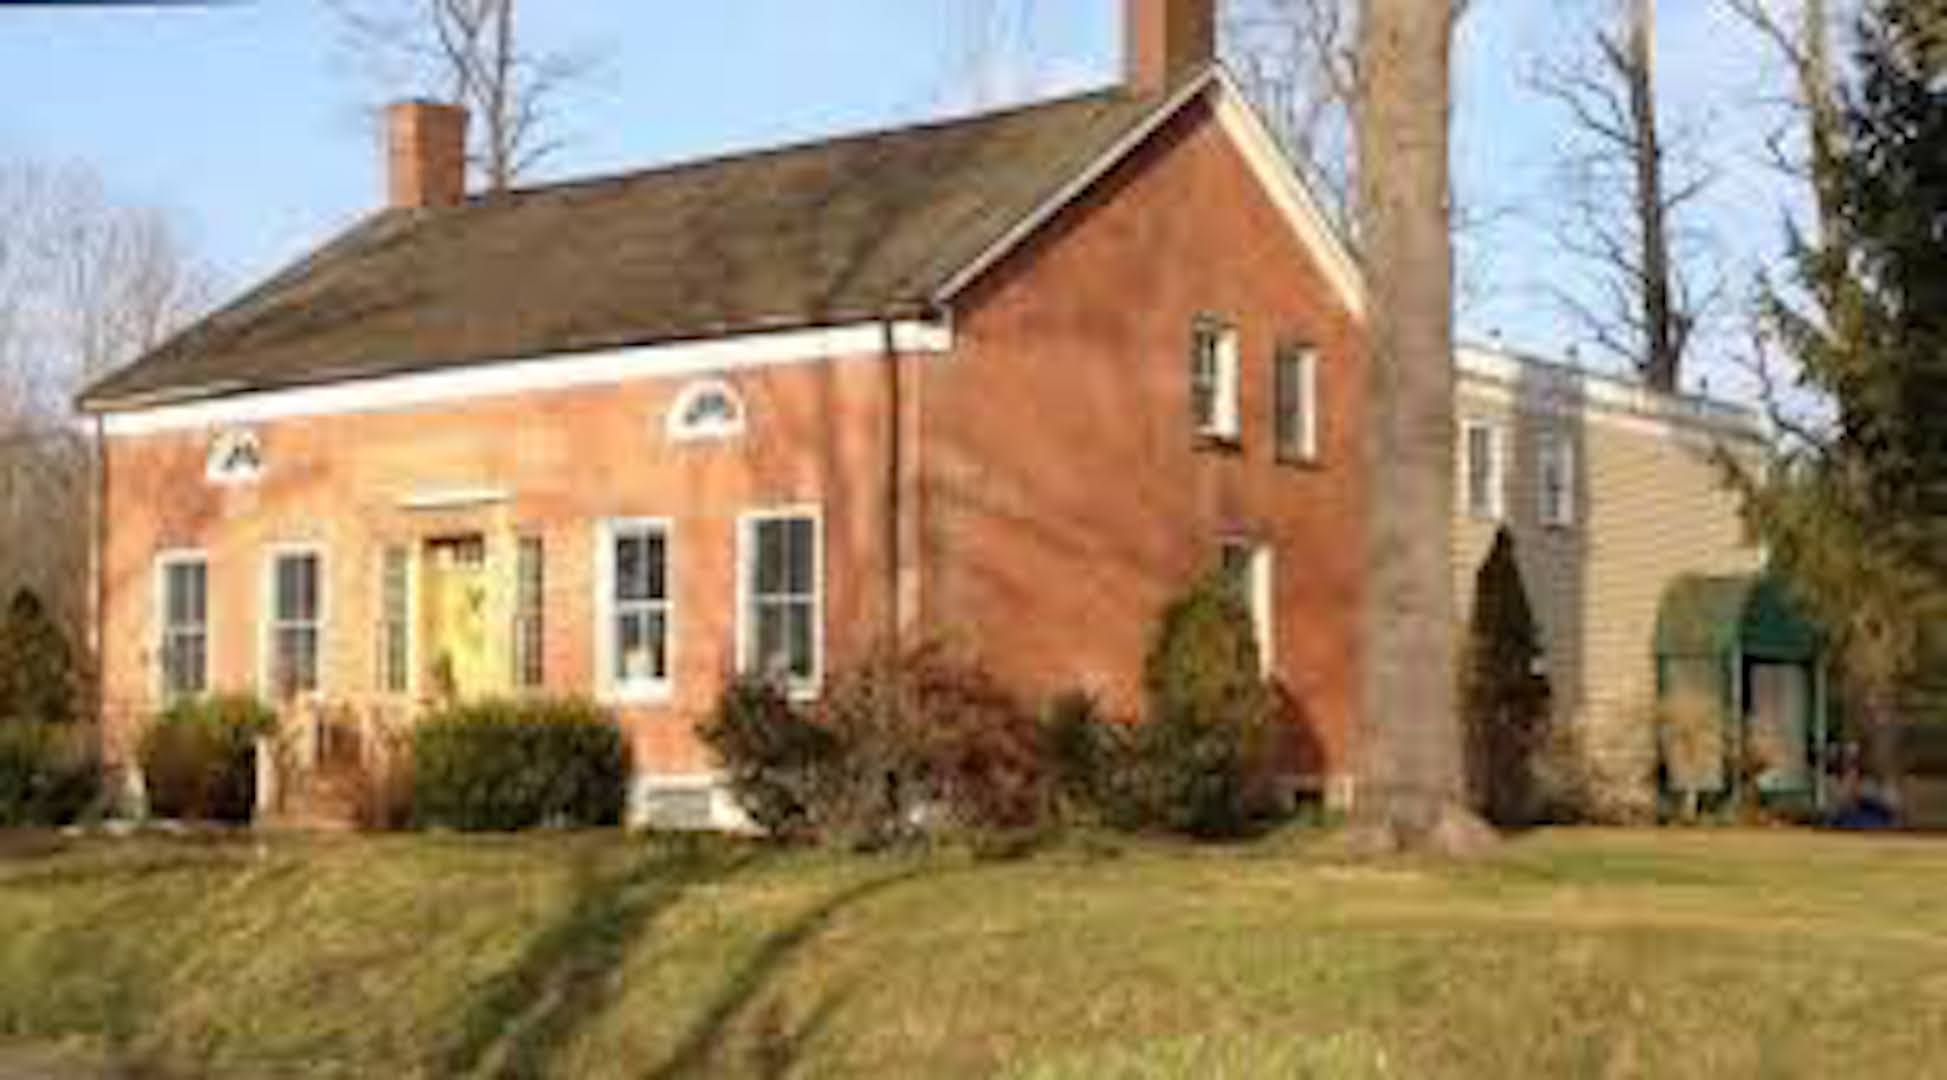 A large brick building with grass in front of a house at Elm Rock Inn B&B.